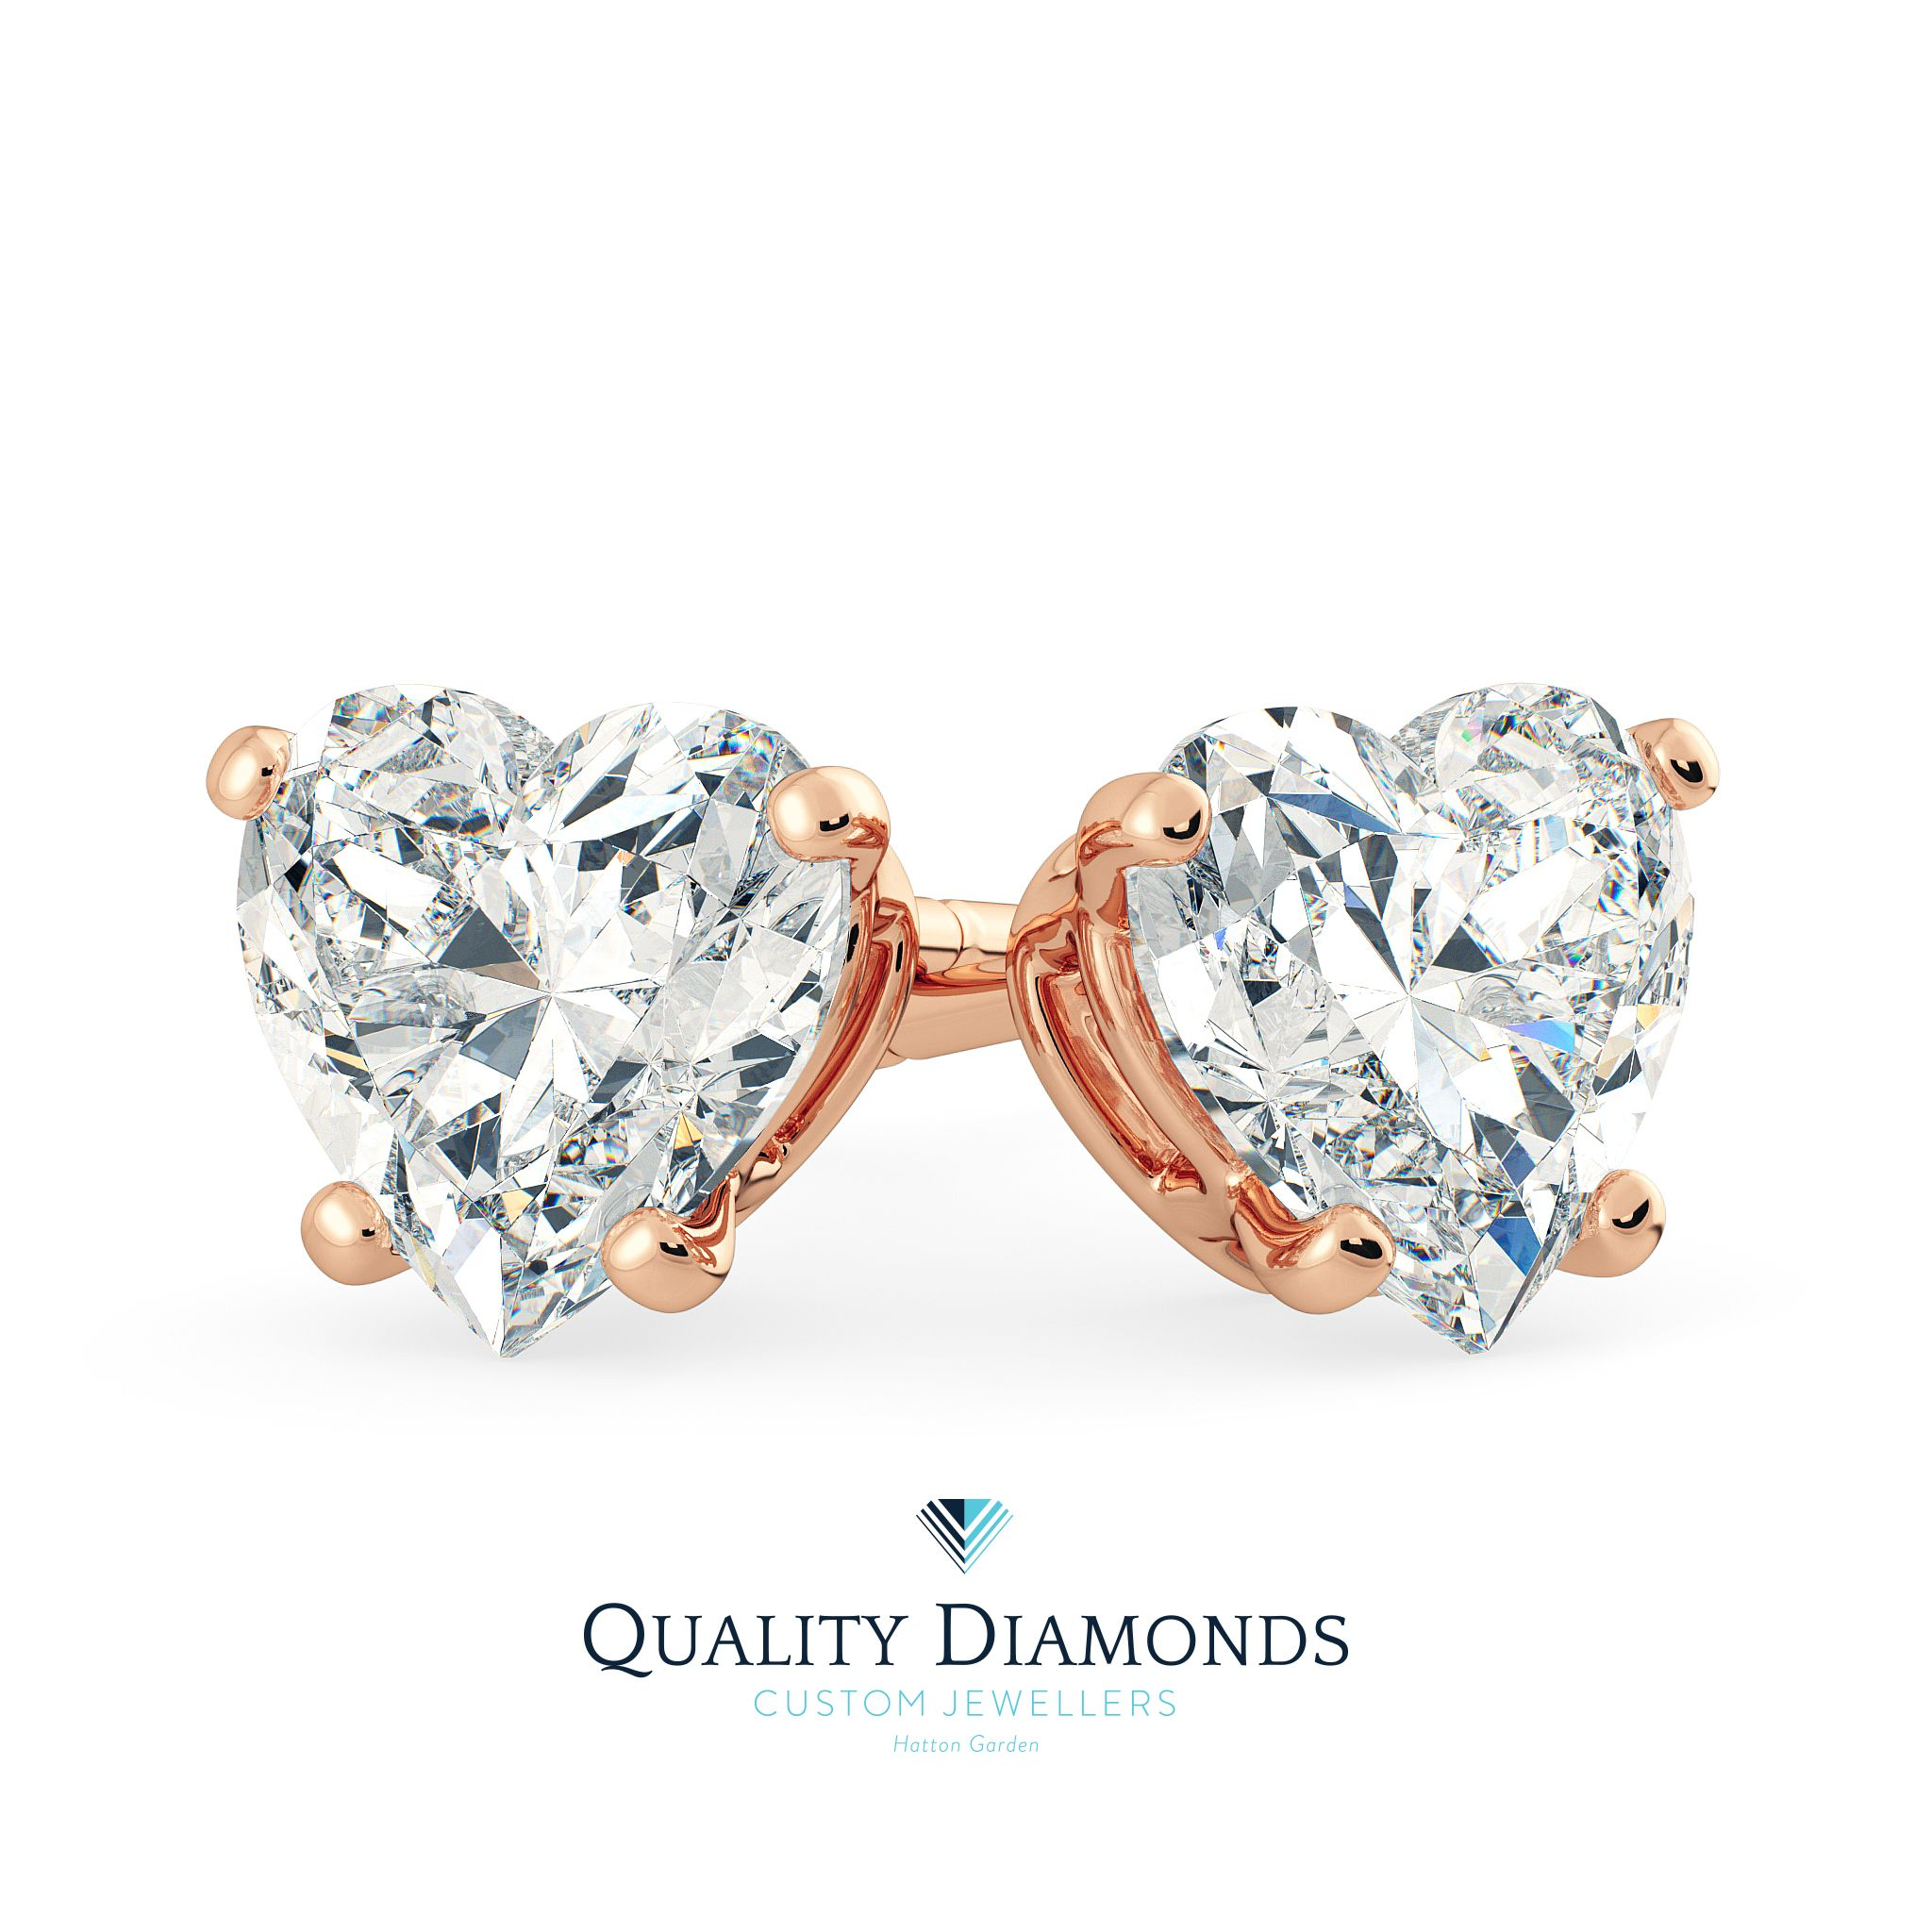 Match These Delightful Heart Cut Diamond Earrings With Our Pendant From Wednesday For A Truly